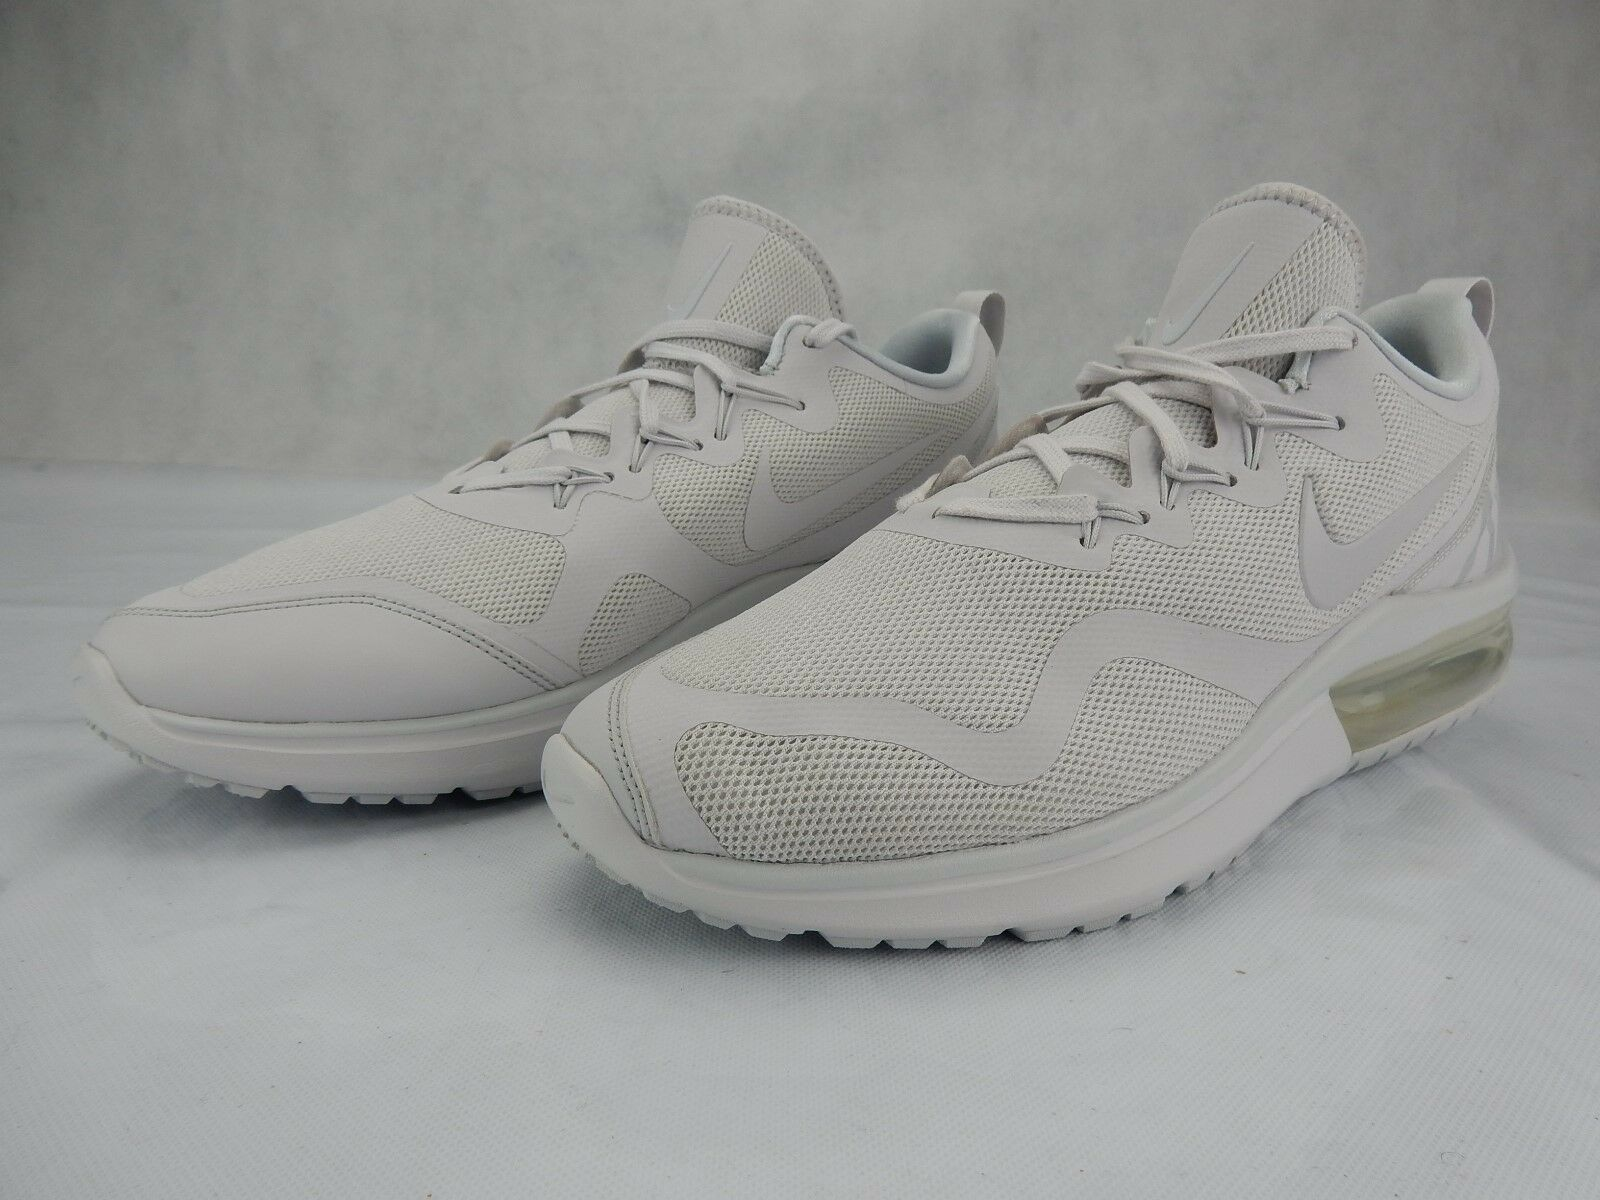 Nike Air Max Fury White Grey Platinum S AA5739 100 Mens Shoes S Platinum Size 10.5 Sneakers b8ac28